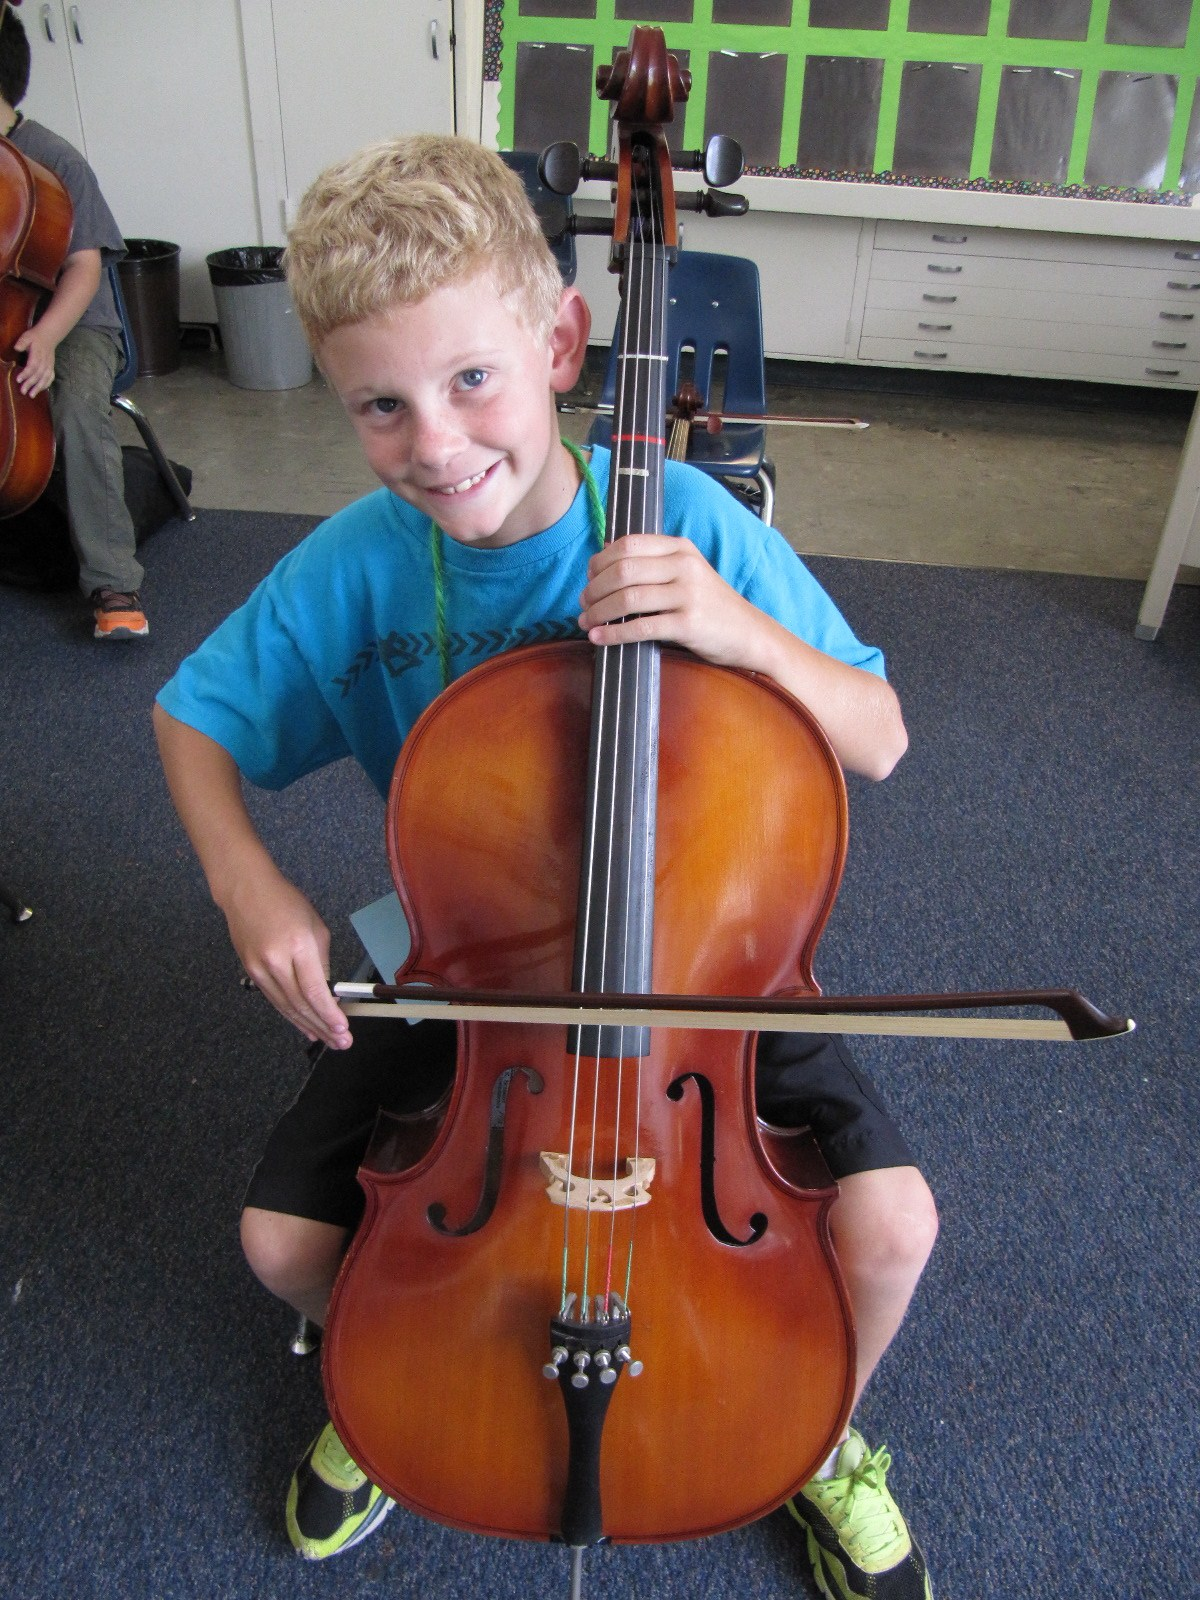 A boy playing a cello.